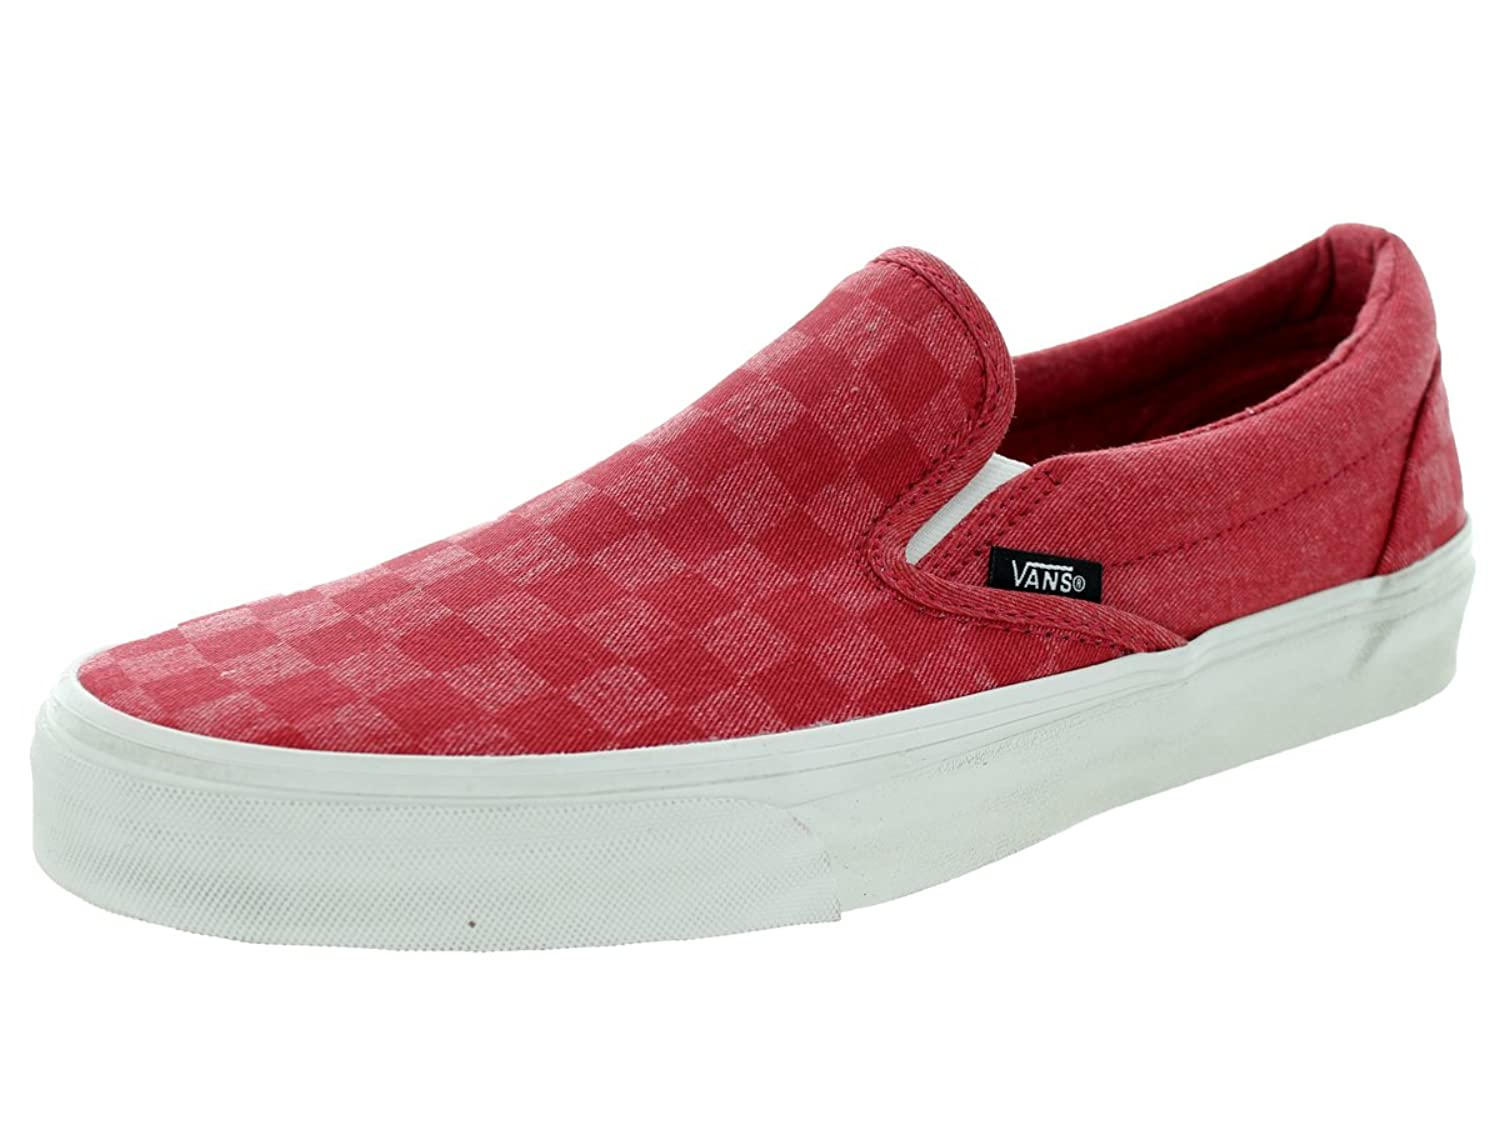 Vans Unisex Adulti'S CLASSIC SLIP ON NERO 6 UK